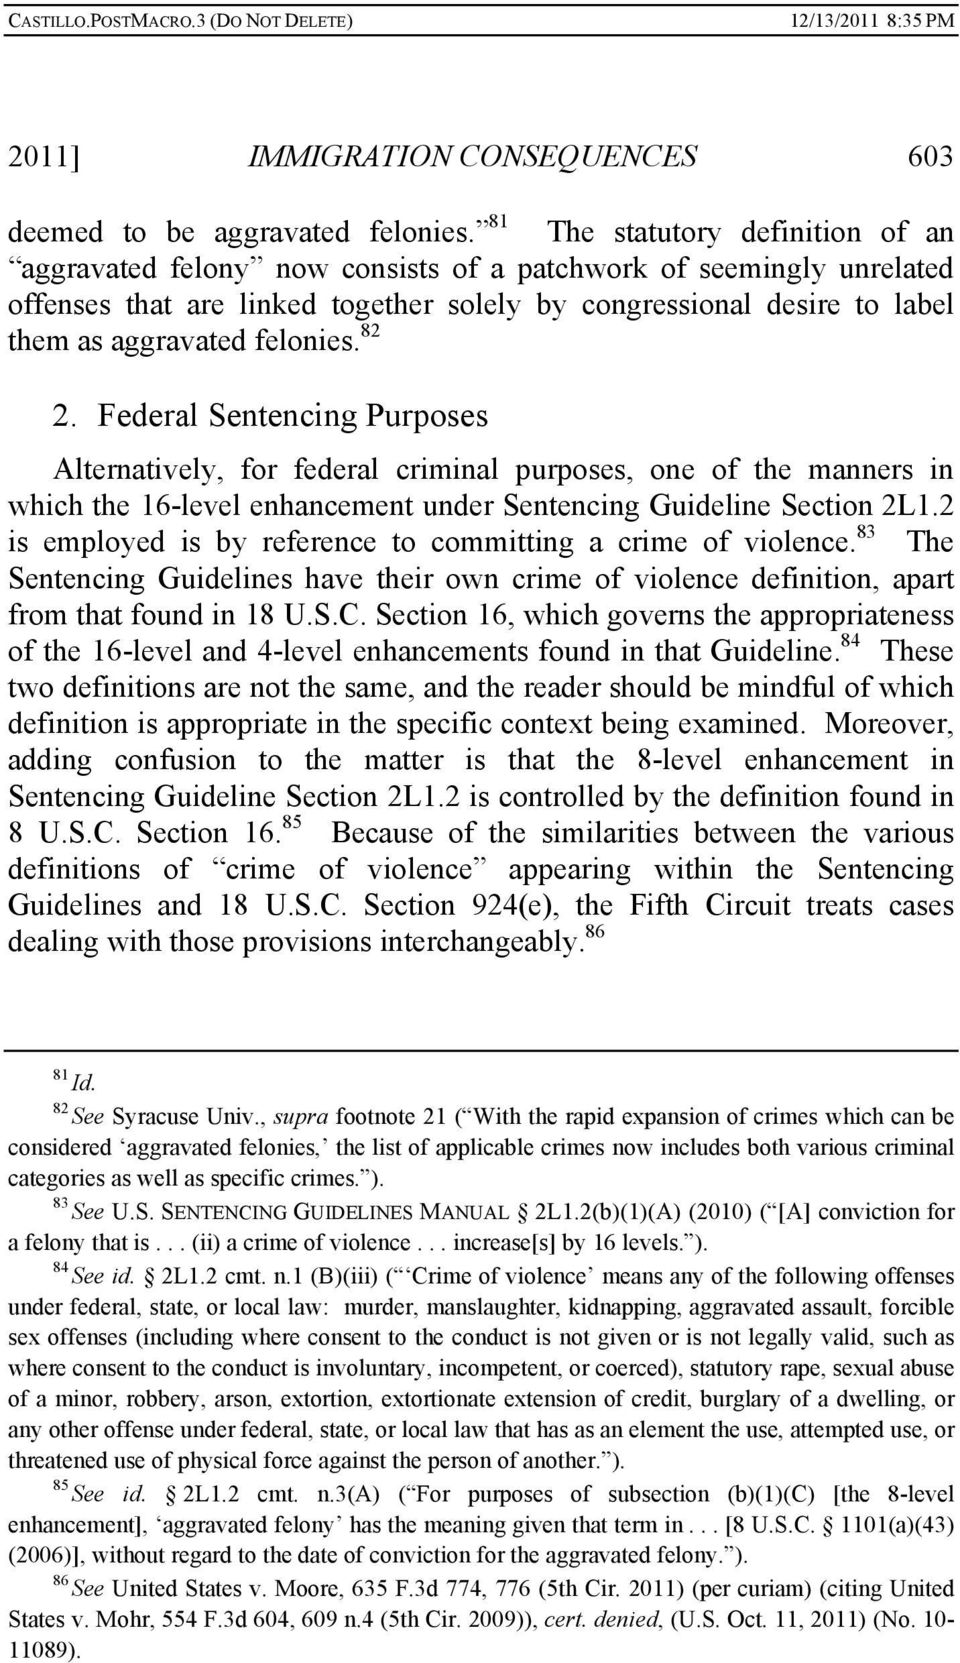 felonies. 82 2. Federal Sentencing Purposes Alternatively, for federal criminal purposes, one of the manners in which the 16-level enhancement under Sentencing Guideline Section 2L1.